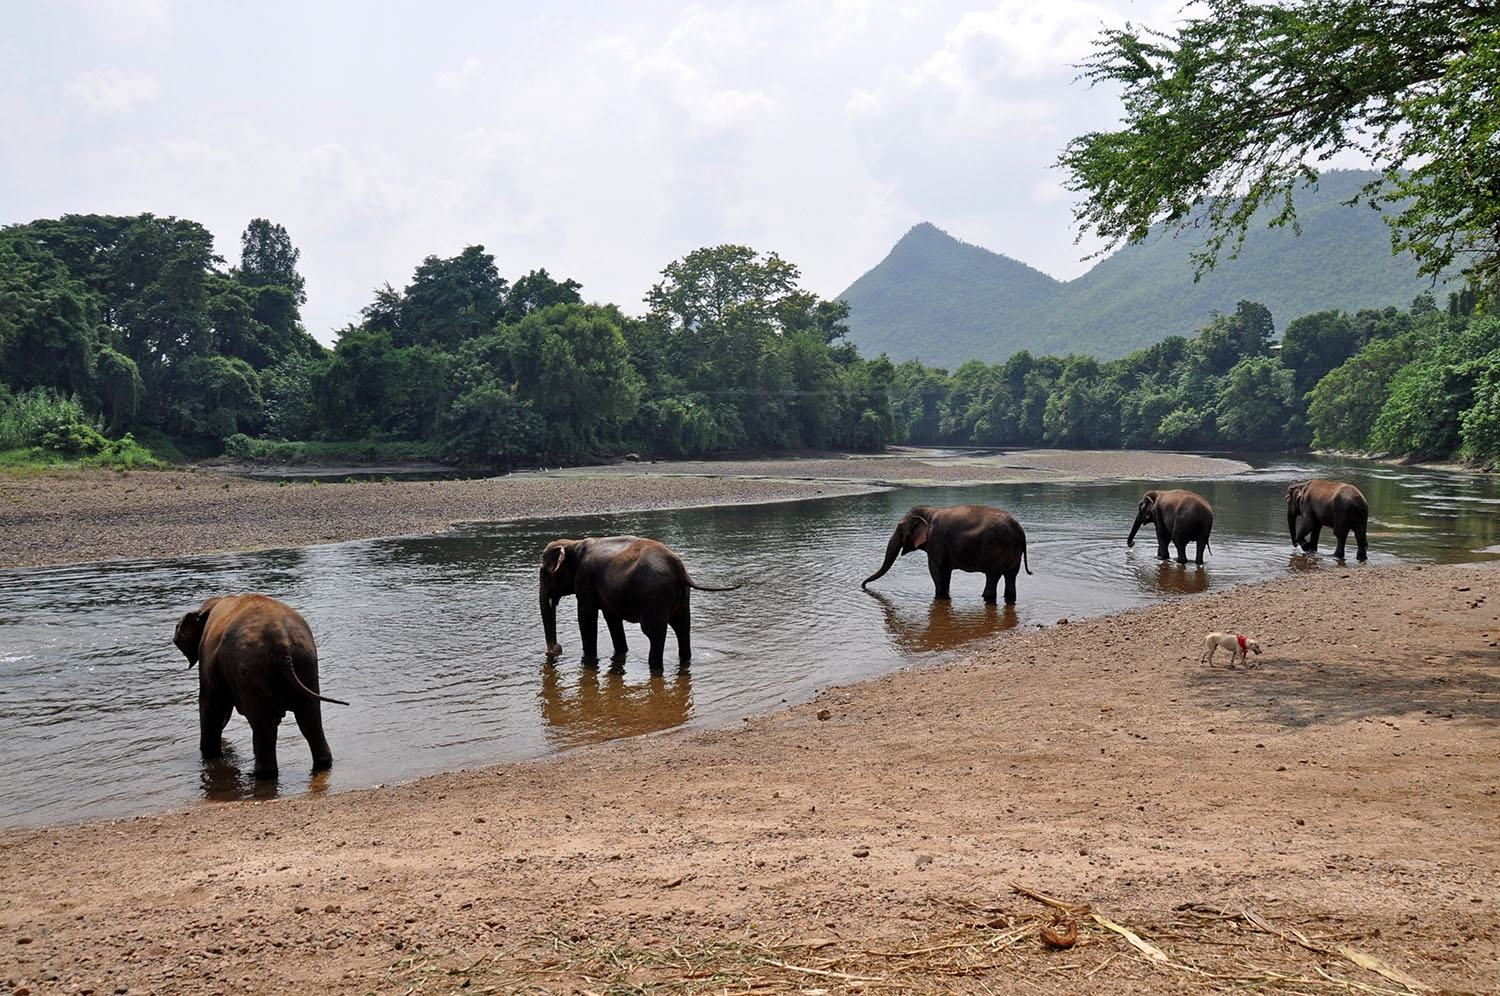 If you want to see elephants in Thailand, consider visiting an elephant rehabilitation center like  Elephants World  or  Elephant Nature Park .